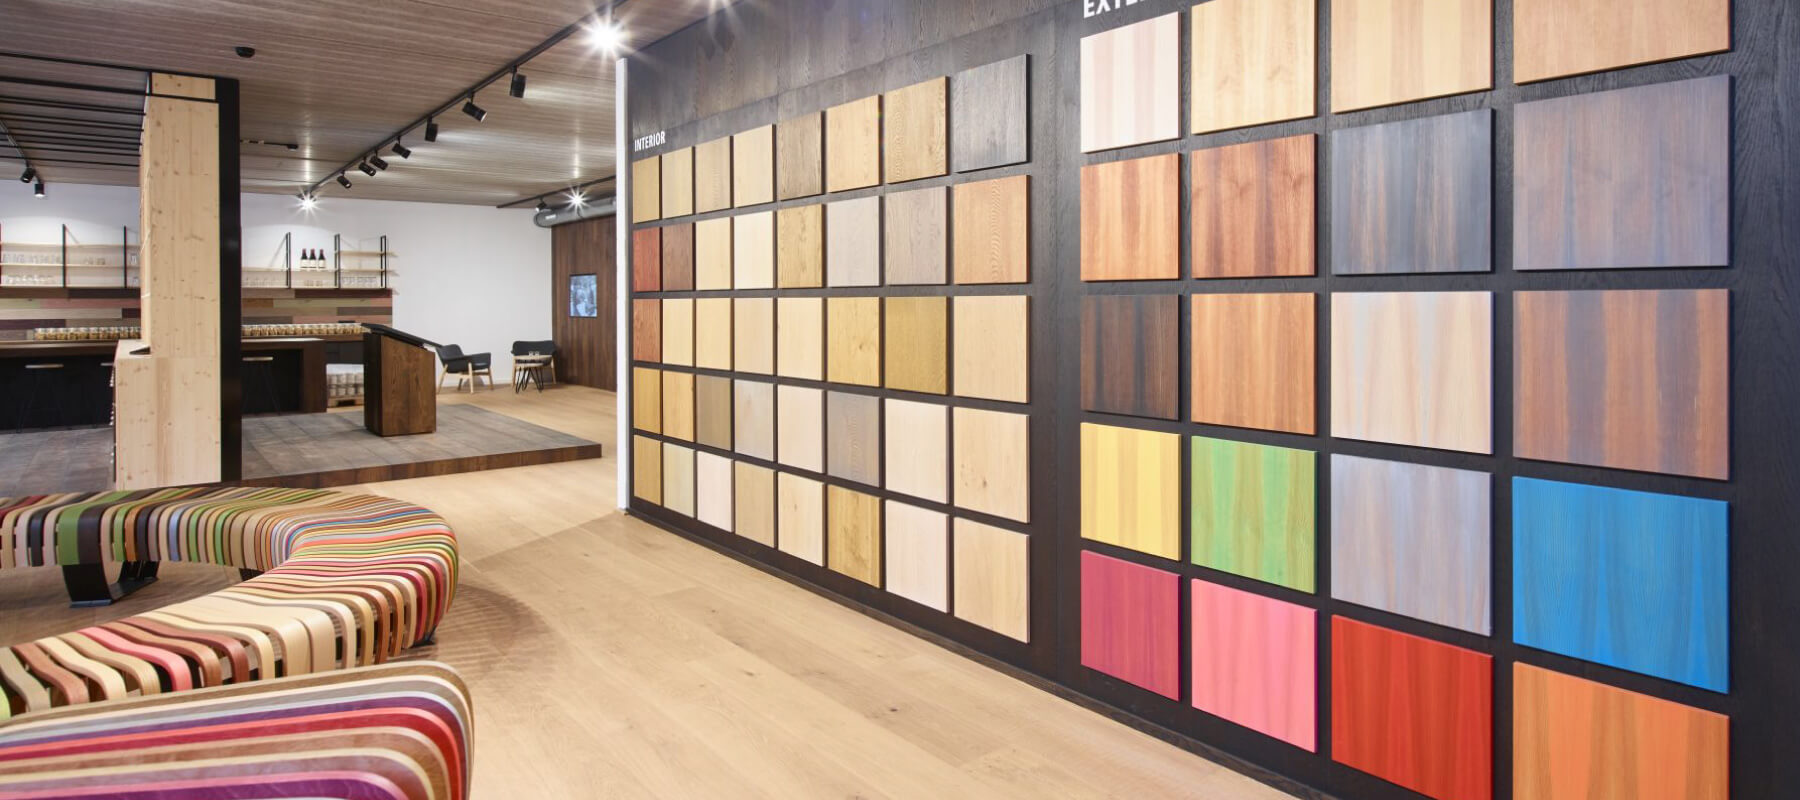 A wall showing color tiles of the Rubio Monocoat interior and exterior colors with a bench and other decor in the background